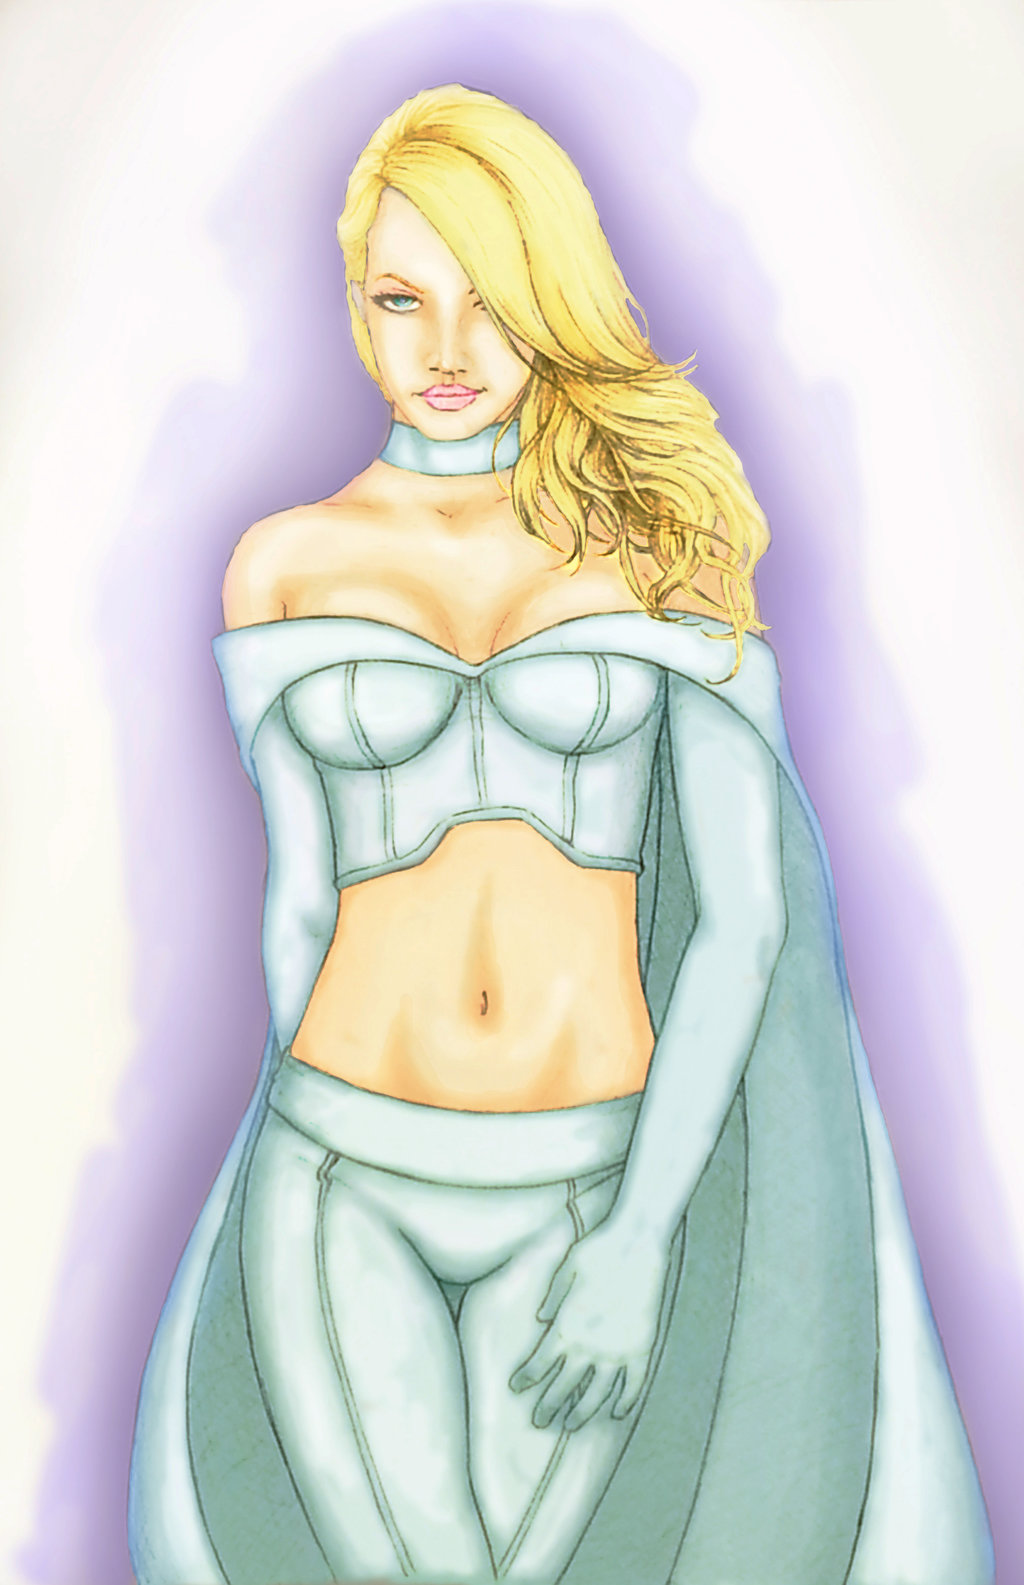 Emma Frost Pic 730